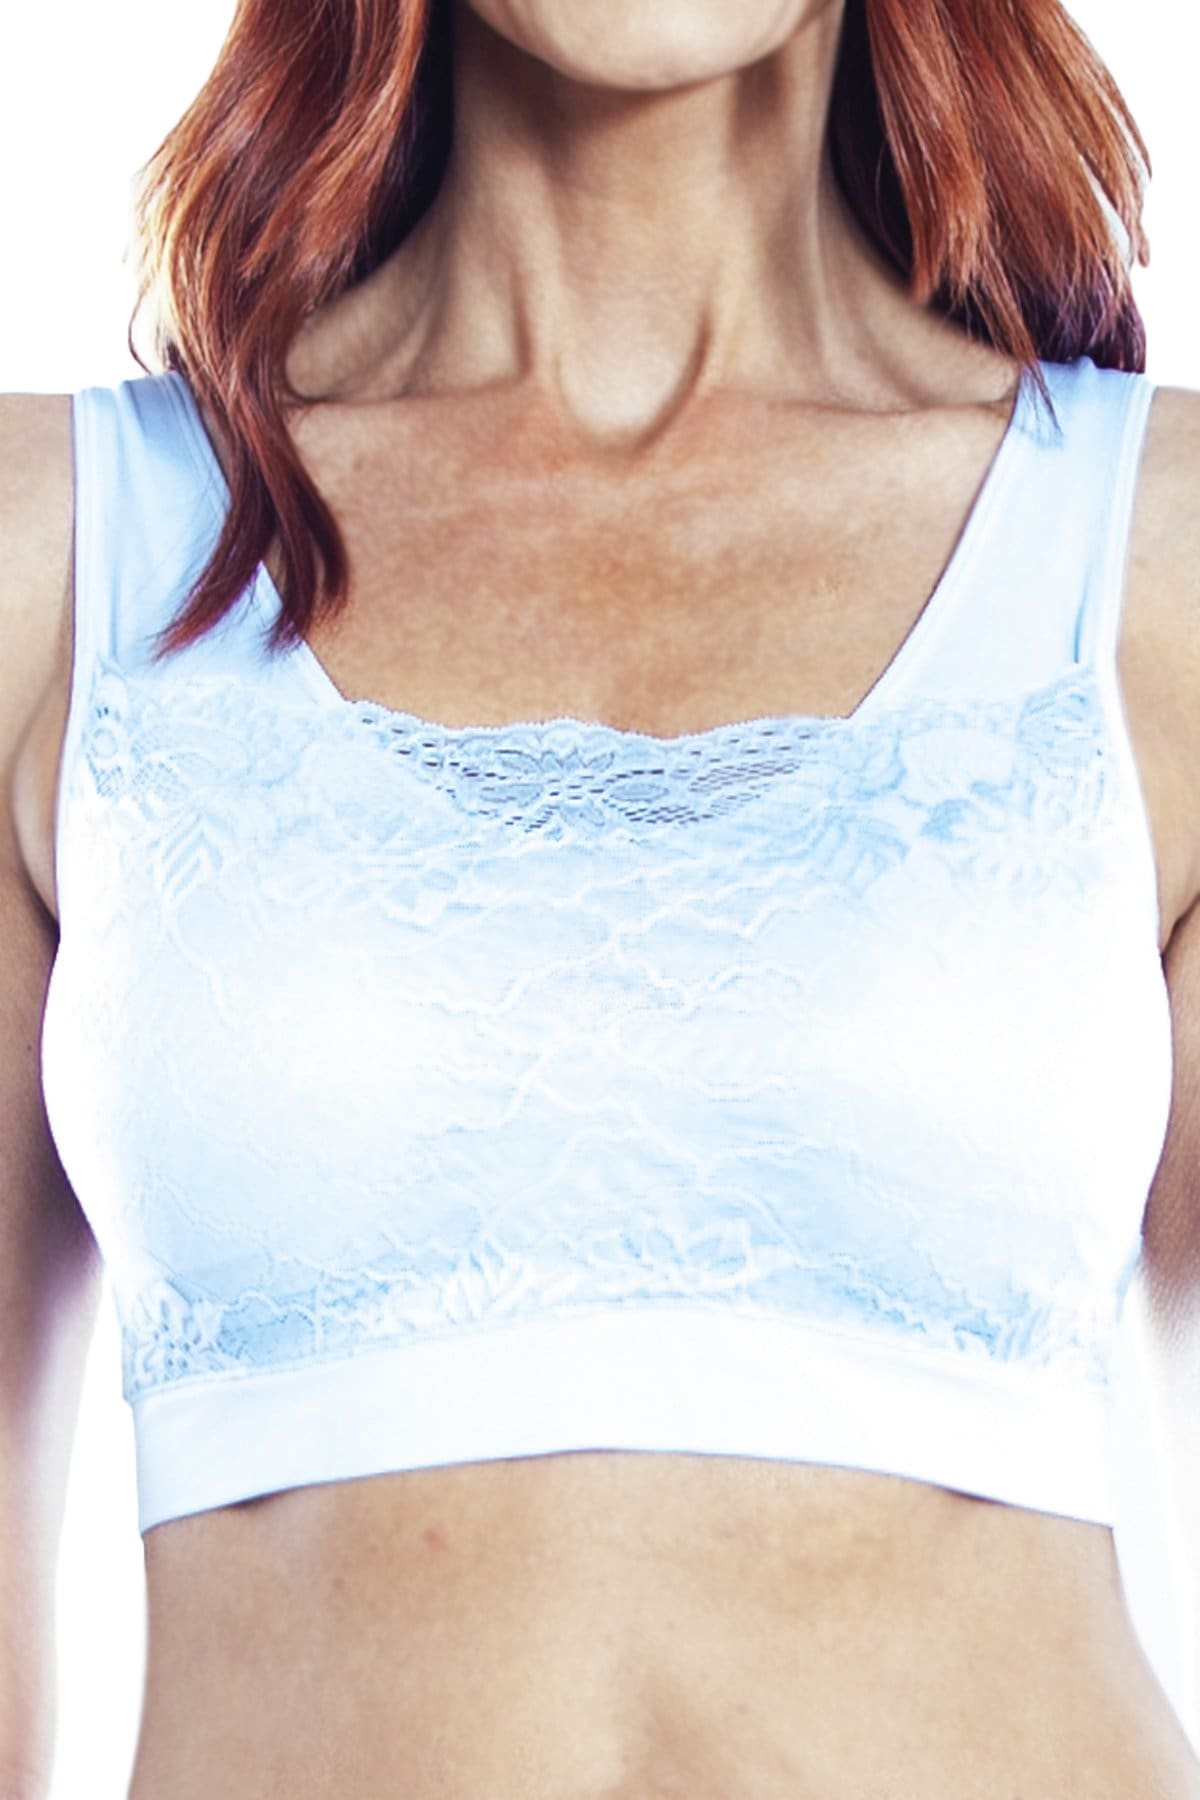 959174f13 Seamless Bra with Lace Overlay - Soft Blue   1X - Intimates